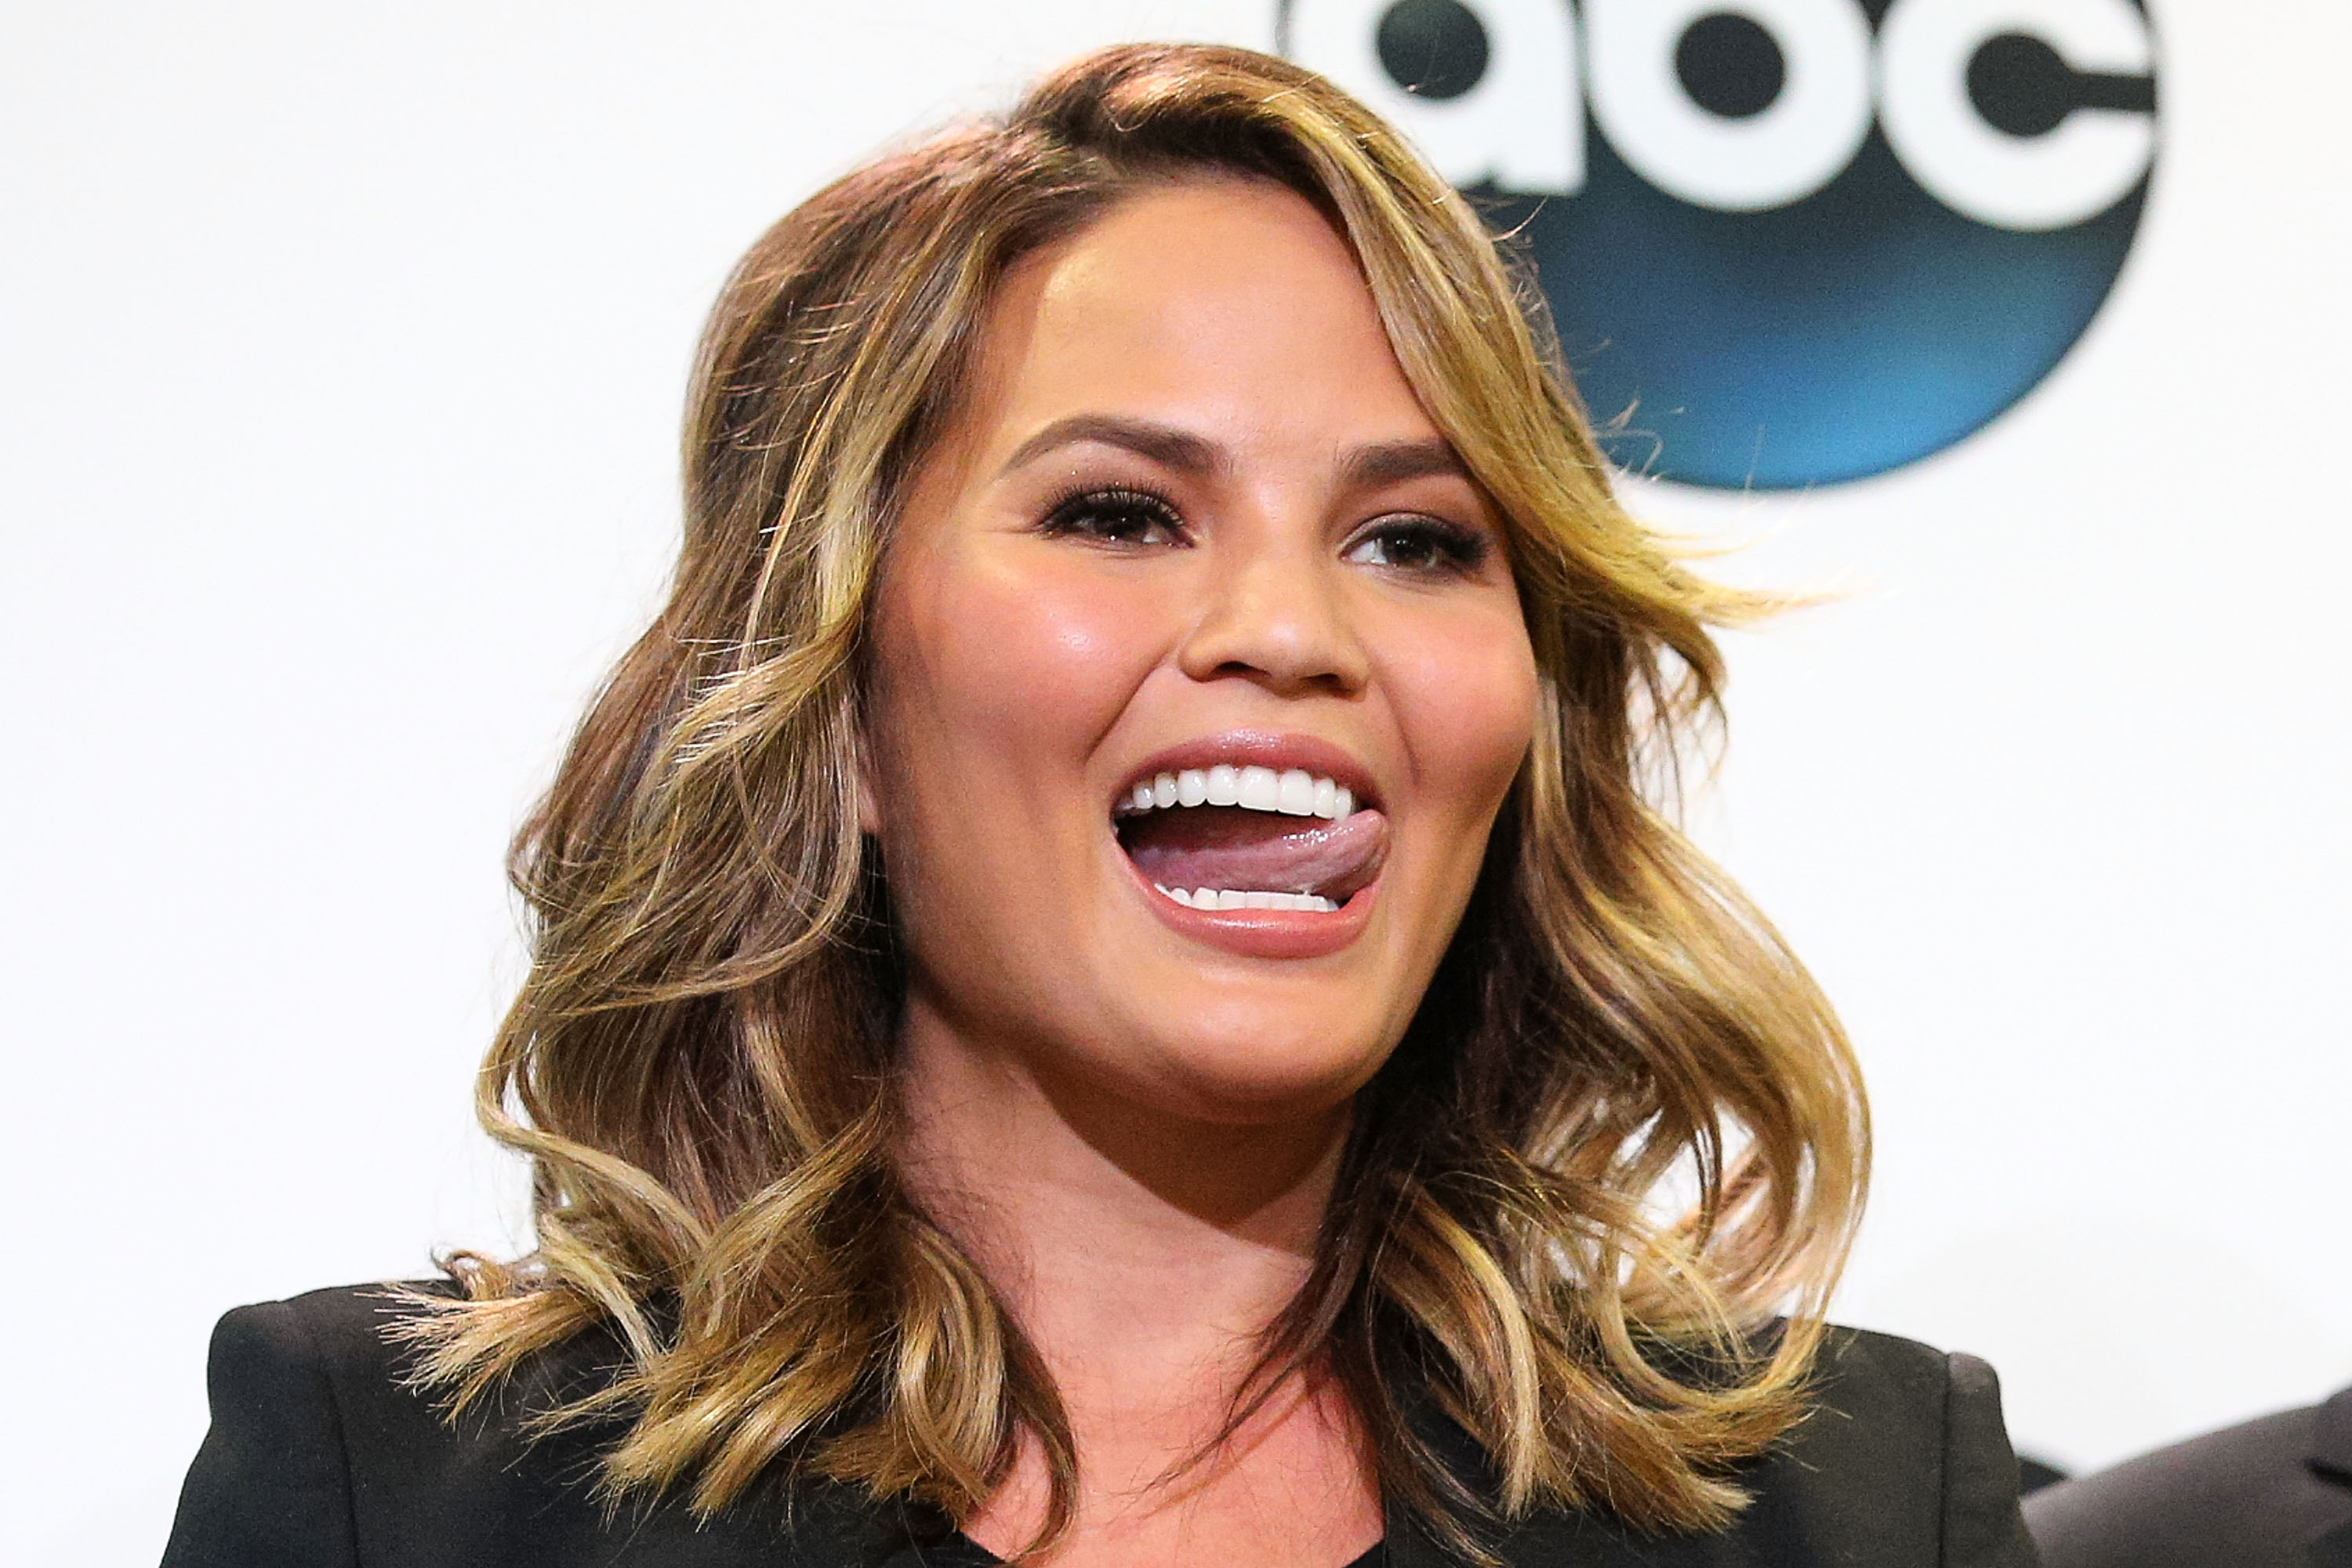 Model Chrissy Teigen attends the 2015 Billboard Music Awards finalists press conference at Twitter on April 7, 2015 in Santa Monica, California.  (Photo by Imeh Akpanudosen/Getty Images)